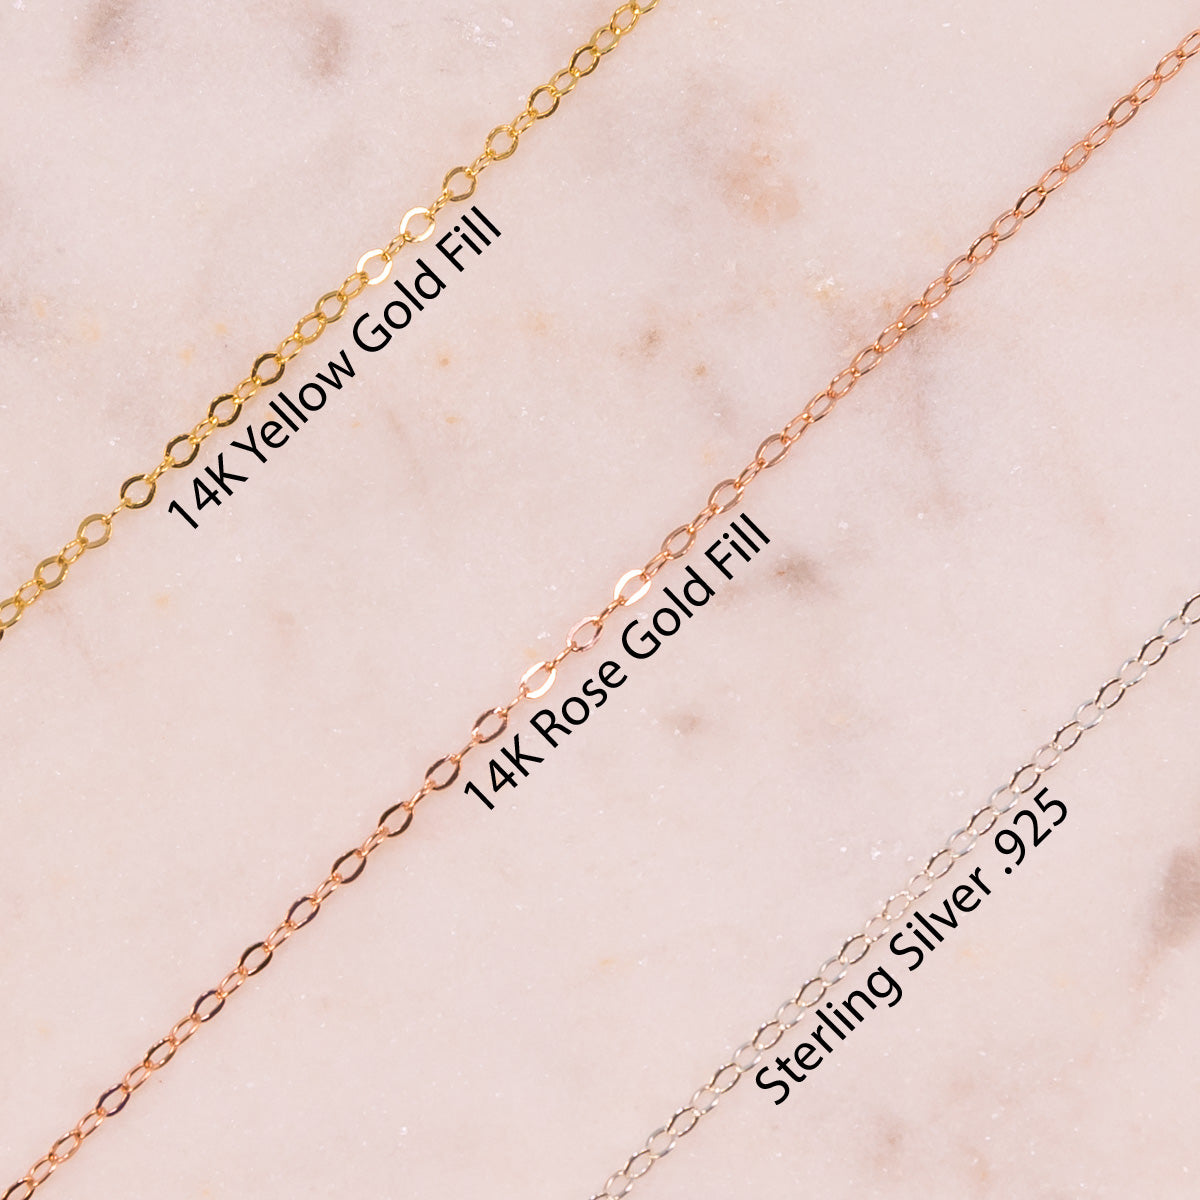 gold chain image, rose gold chain image, sterling silver chain comparison